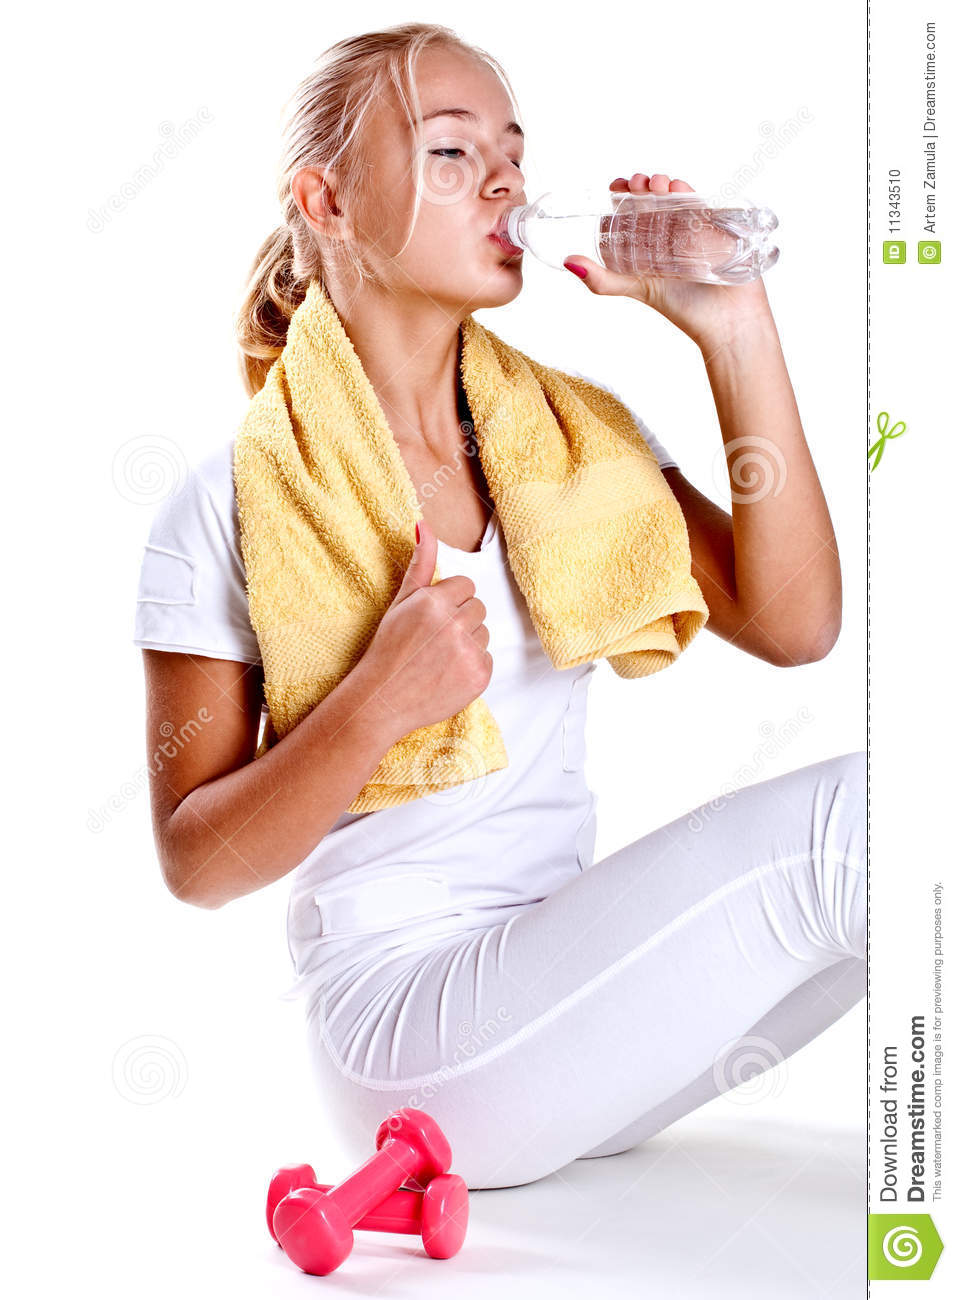 Woman Holding A Bottle Of Water Stock Photo - Image: 11343510